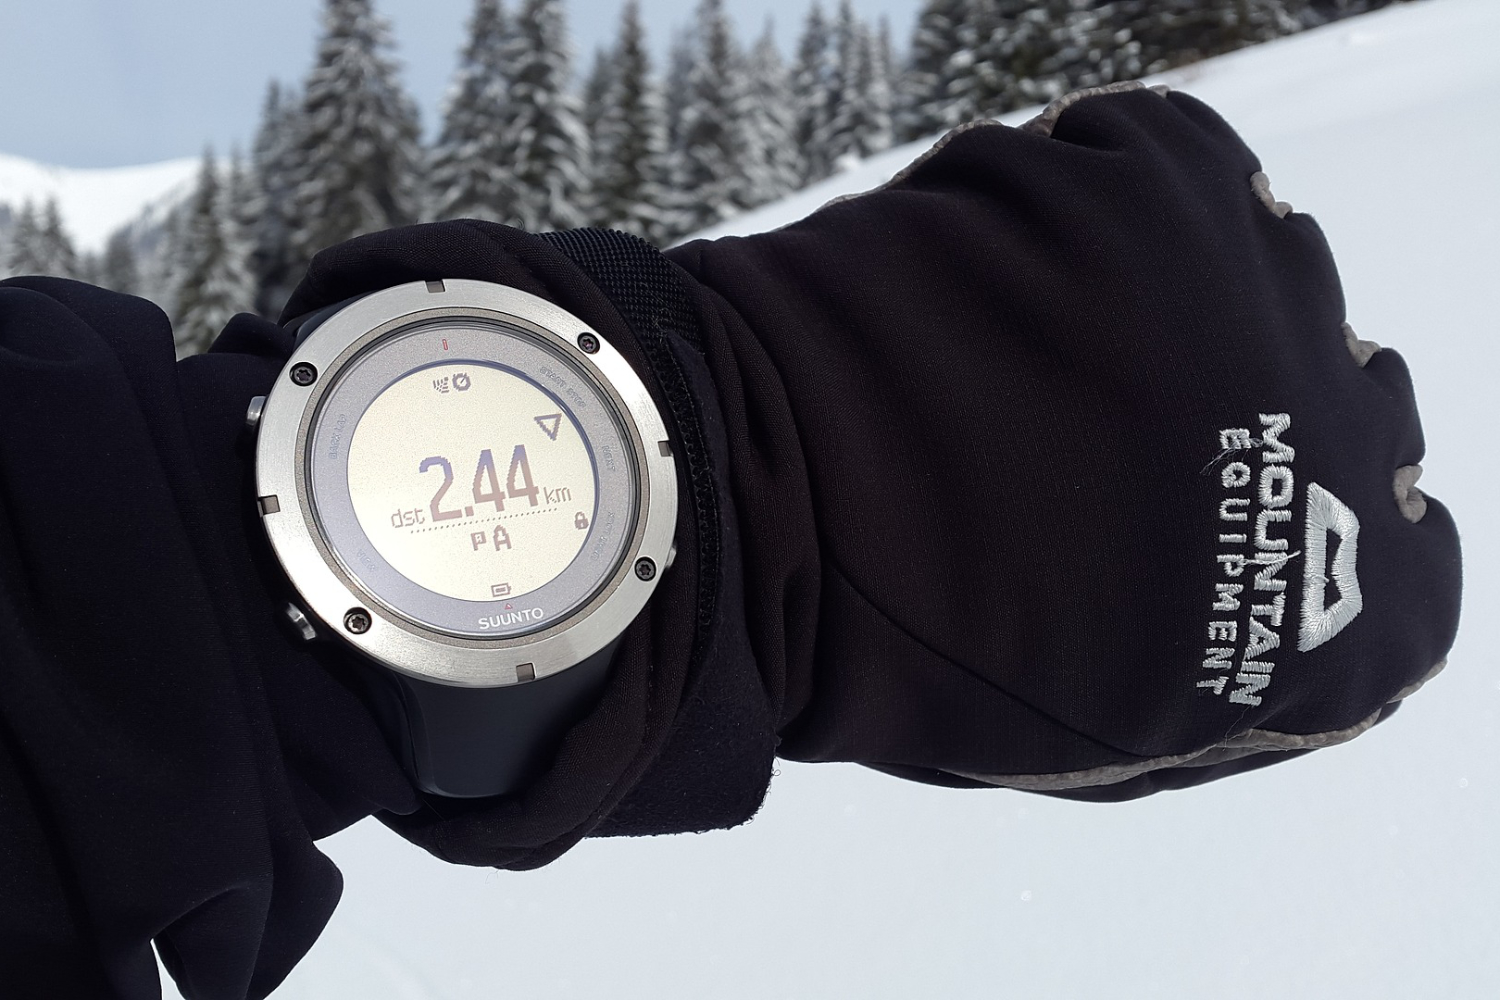 skier wearing GPS watch